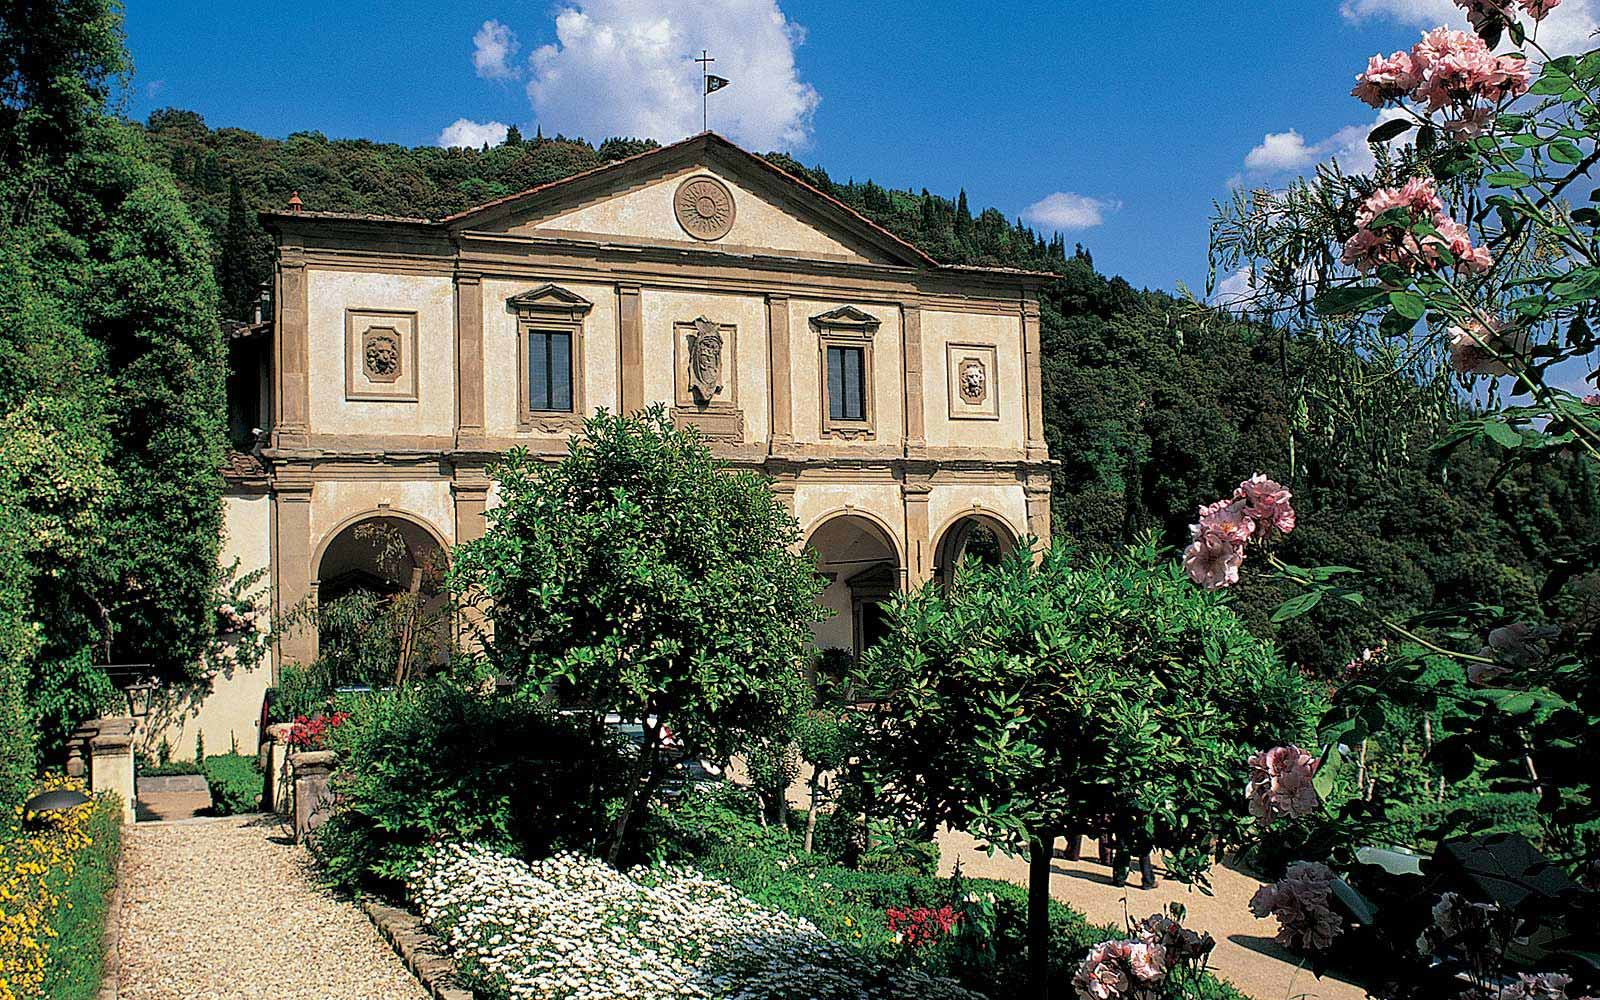 Grounds at Belmond Villa San Michele